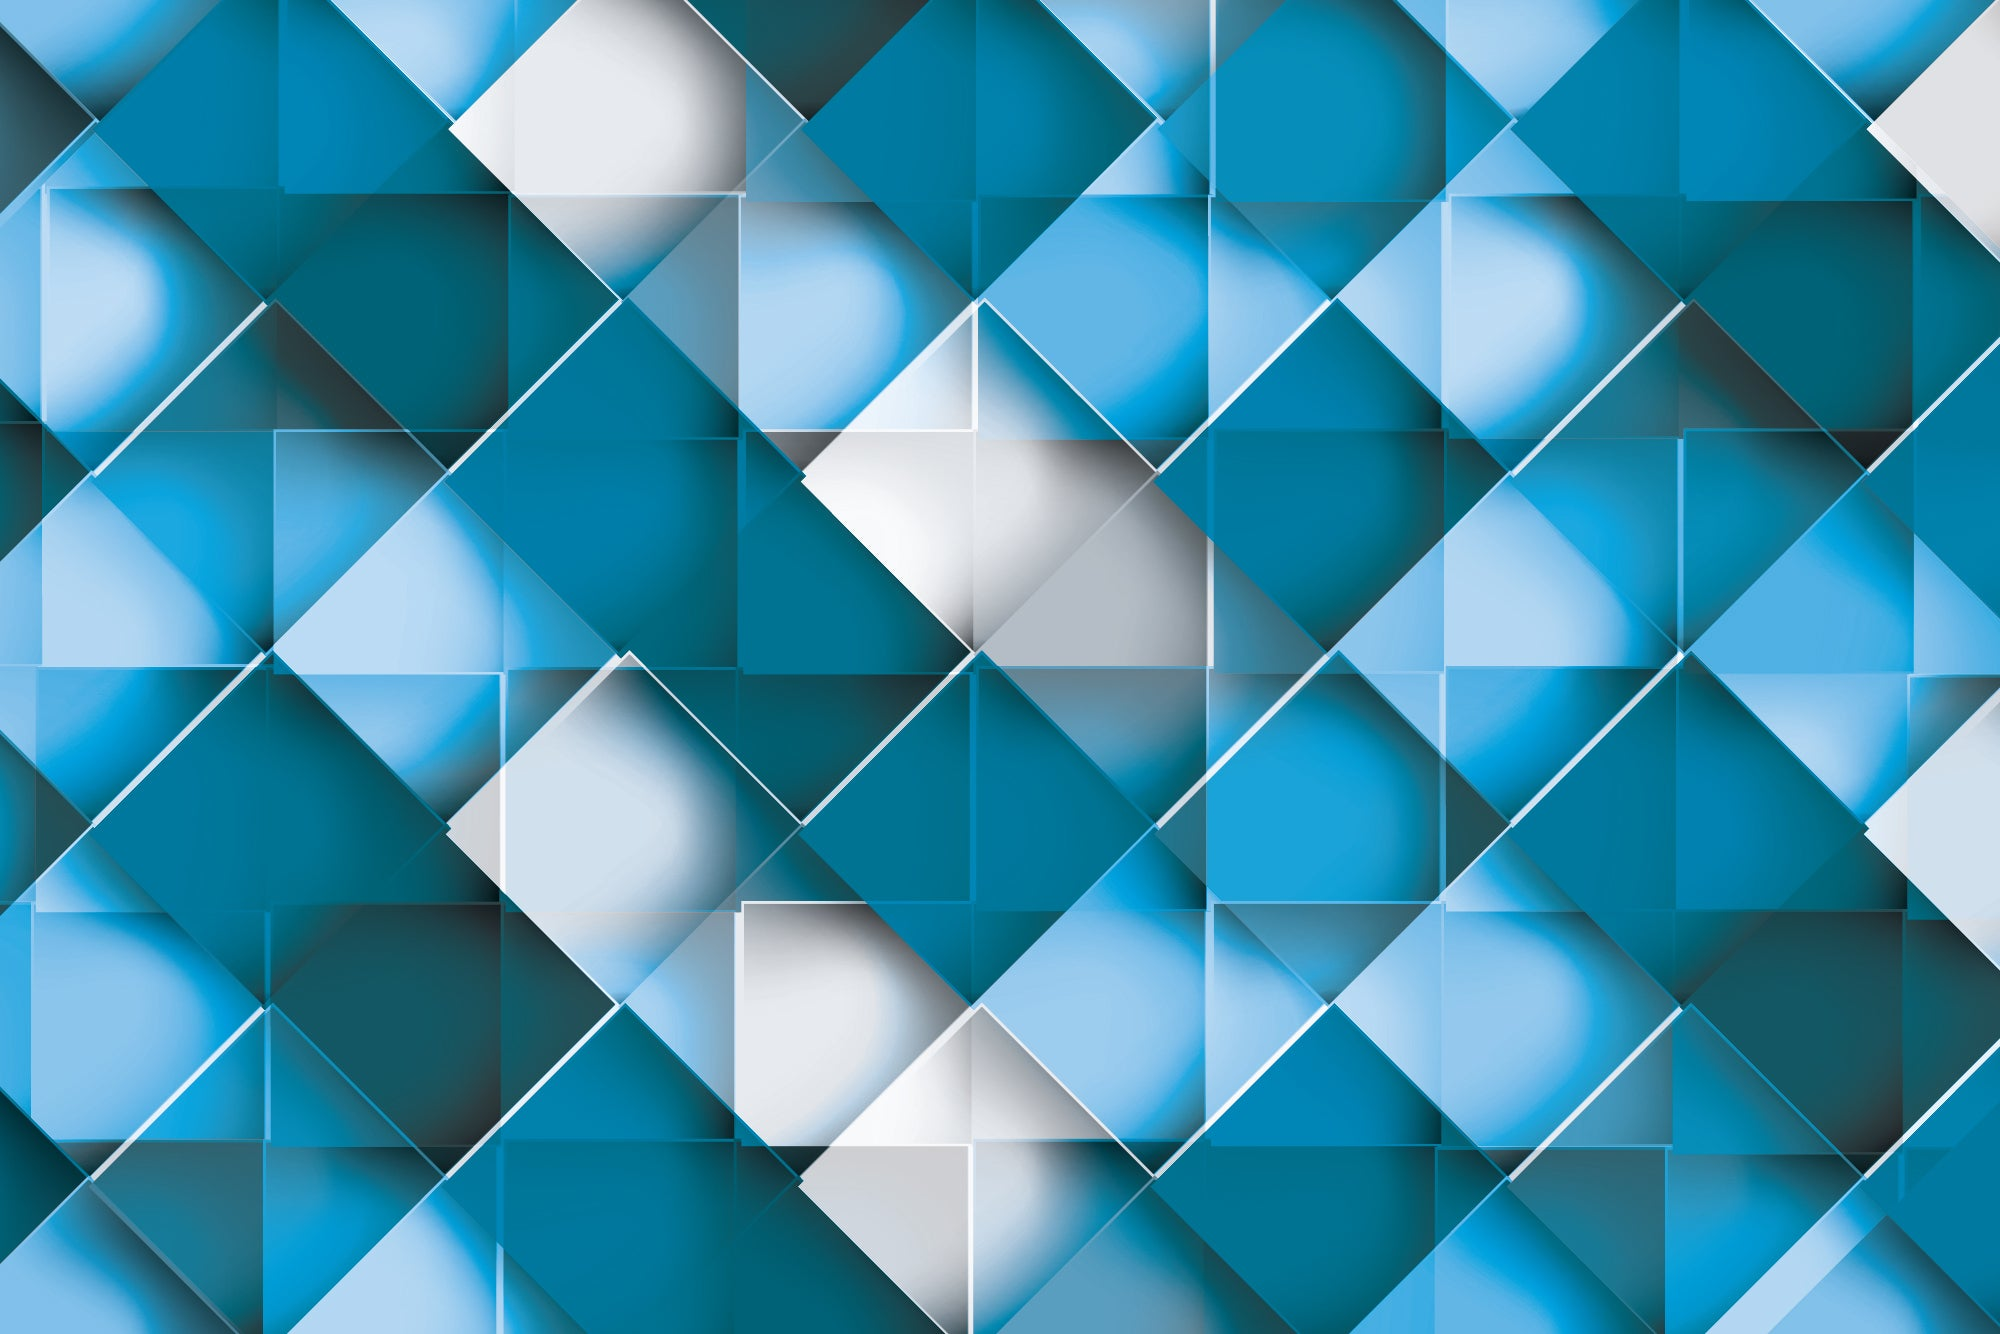 Blue Squares - Wall Mural